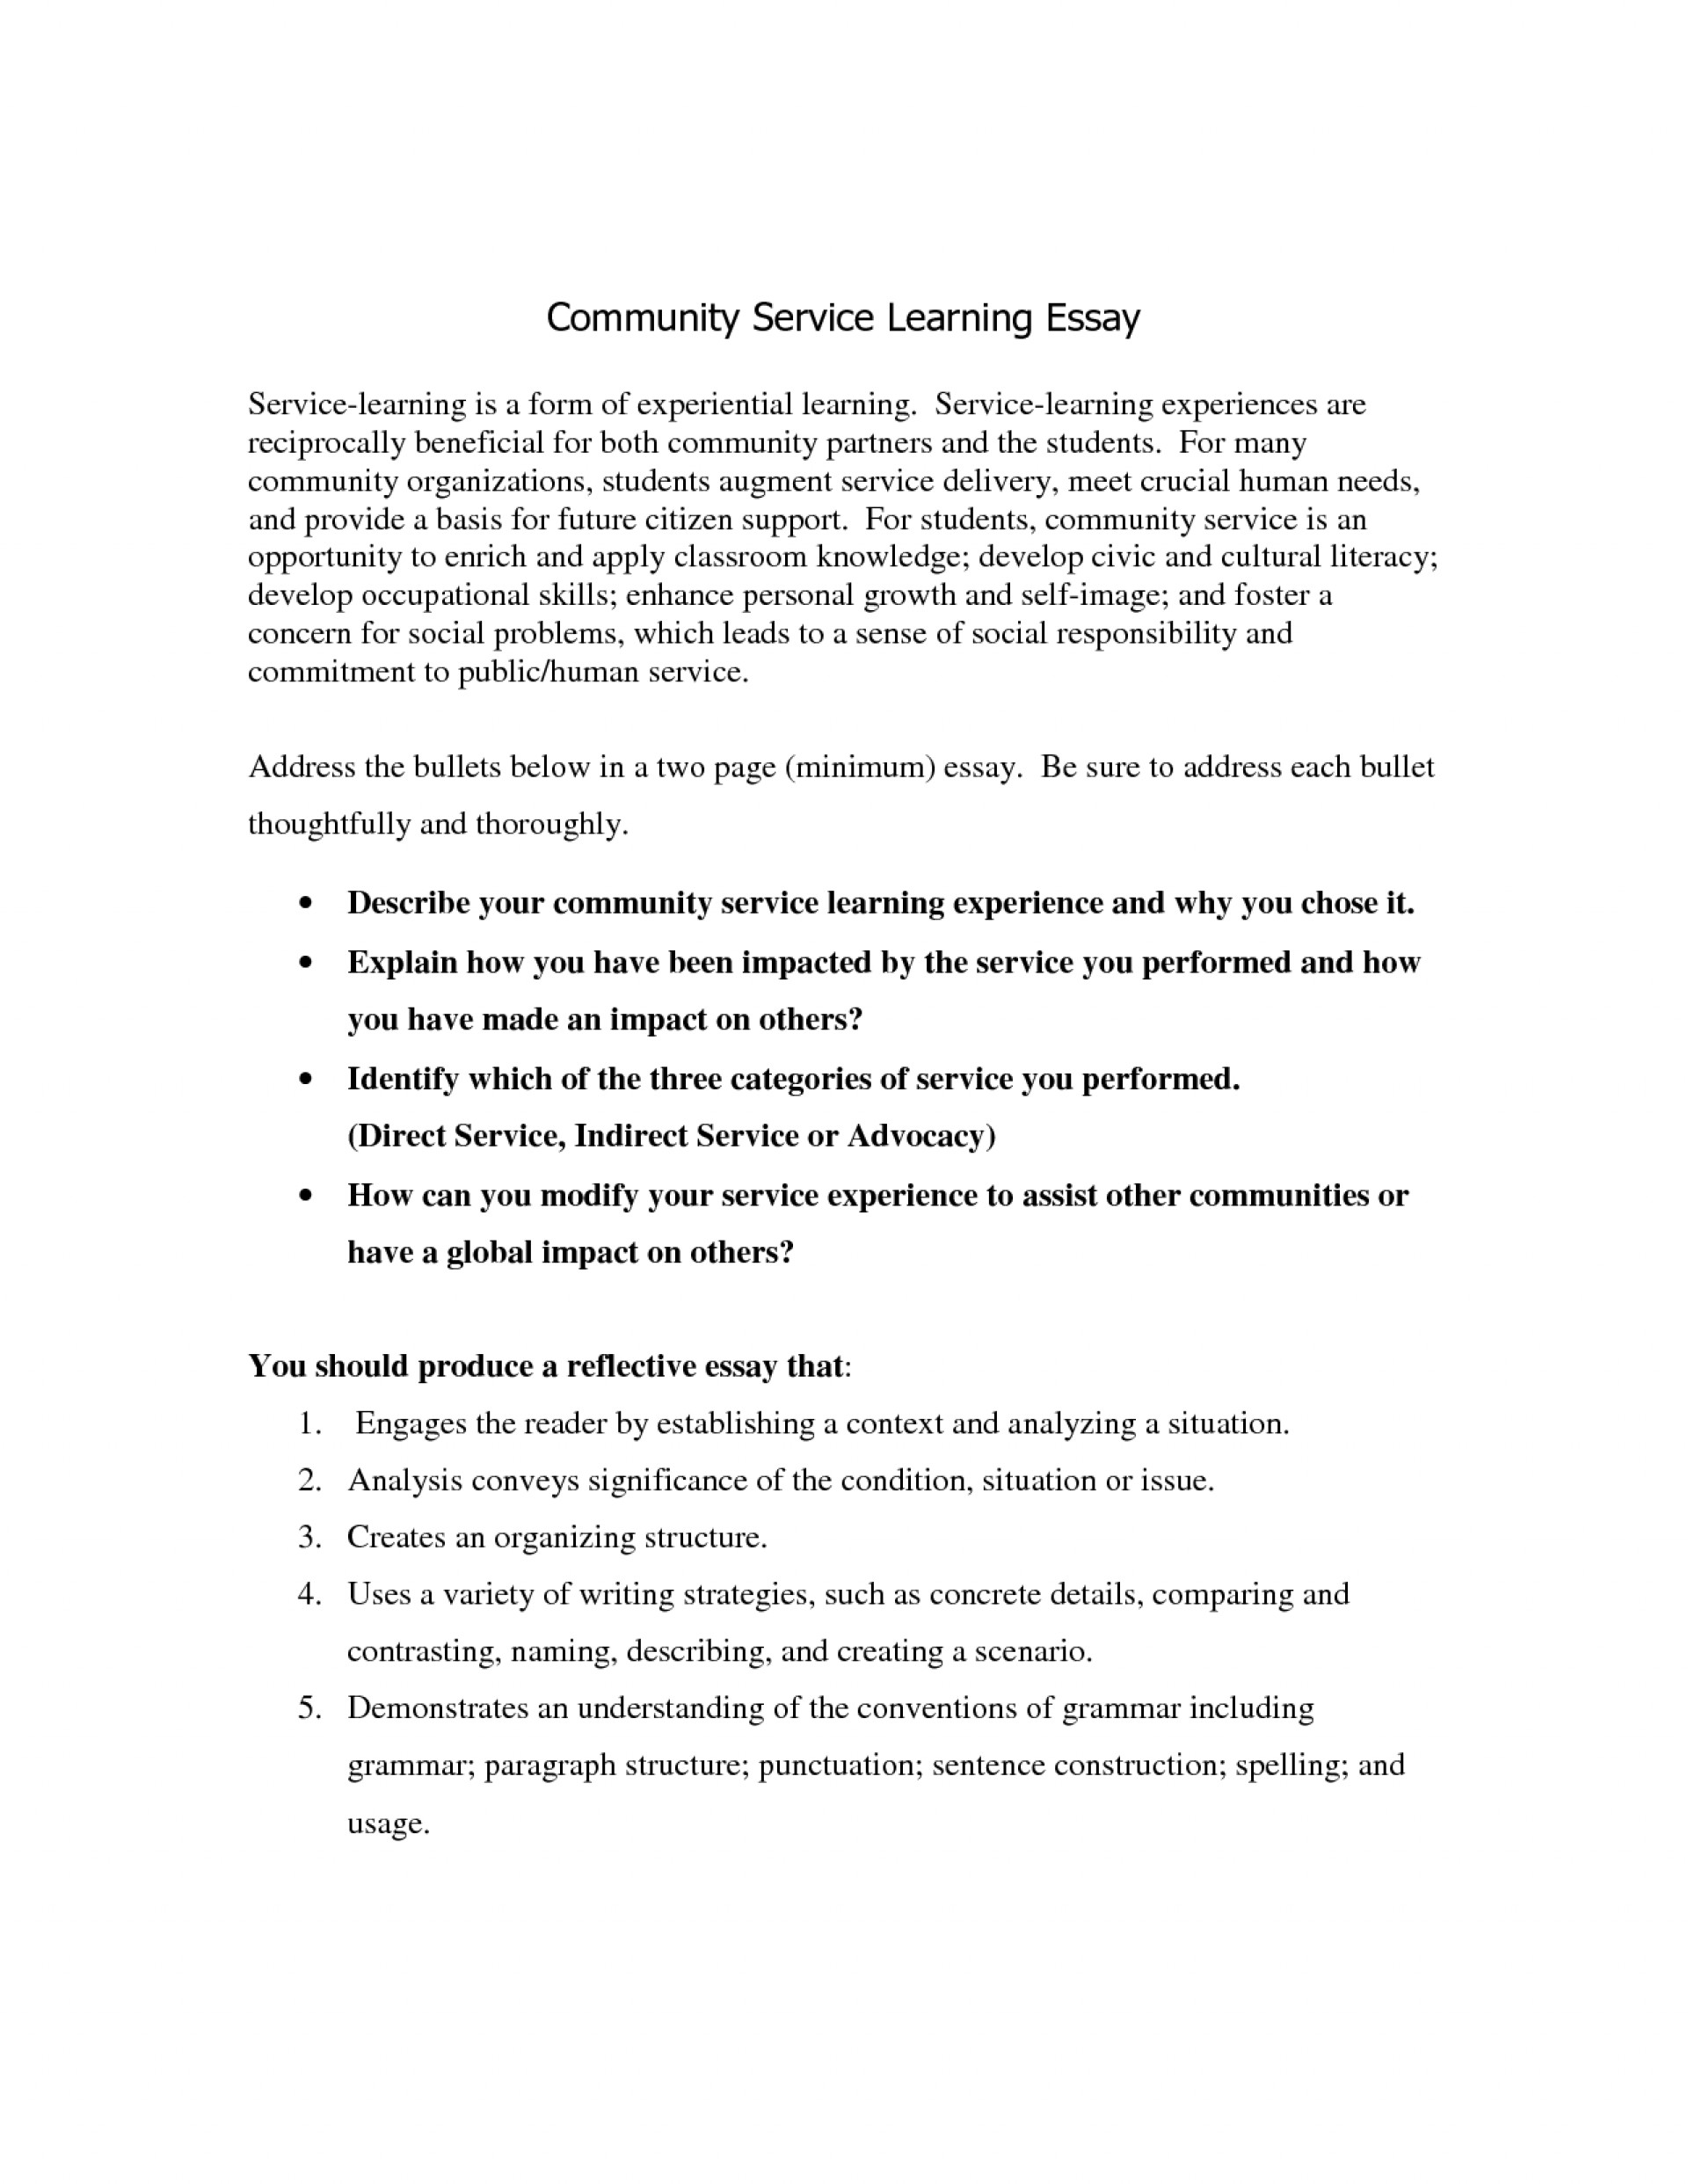 025 Collection Of Solutions Munity Service Essay Singyourlovestory Wonderful Contributions To My Community Sample Scholarship Essays Awful For High School Seniors 500 Words 1920